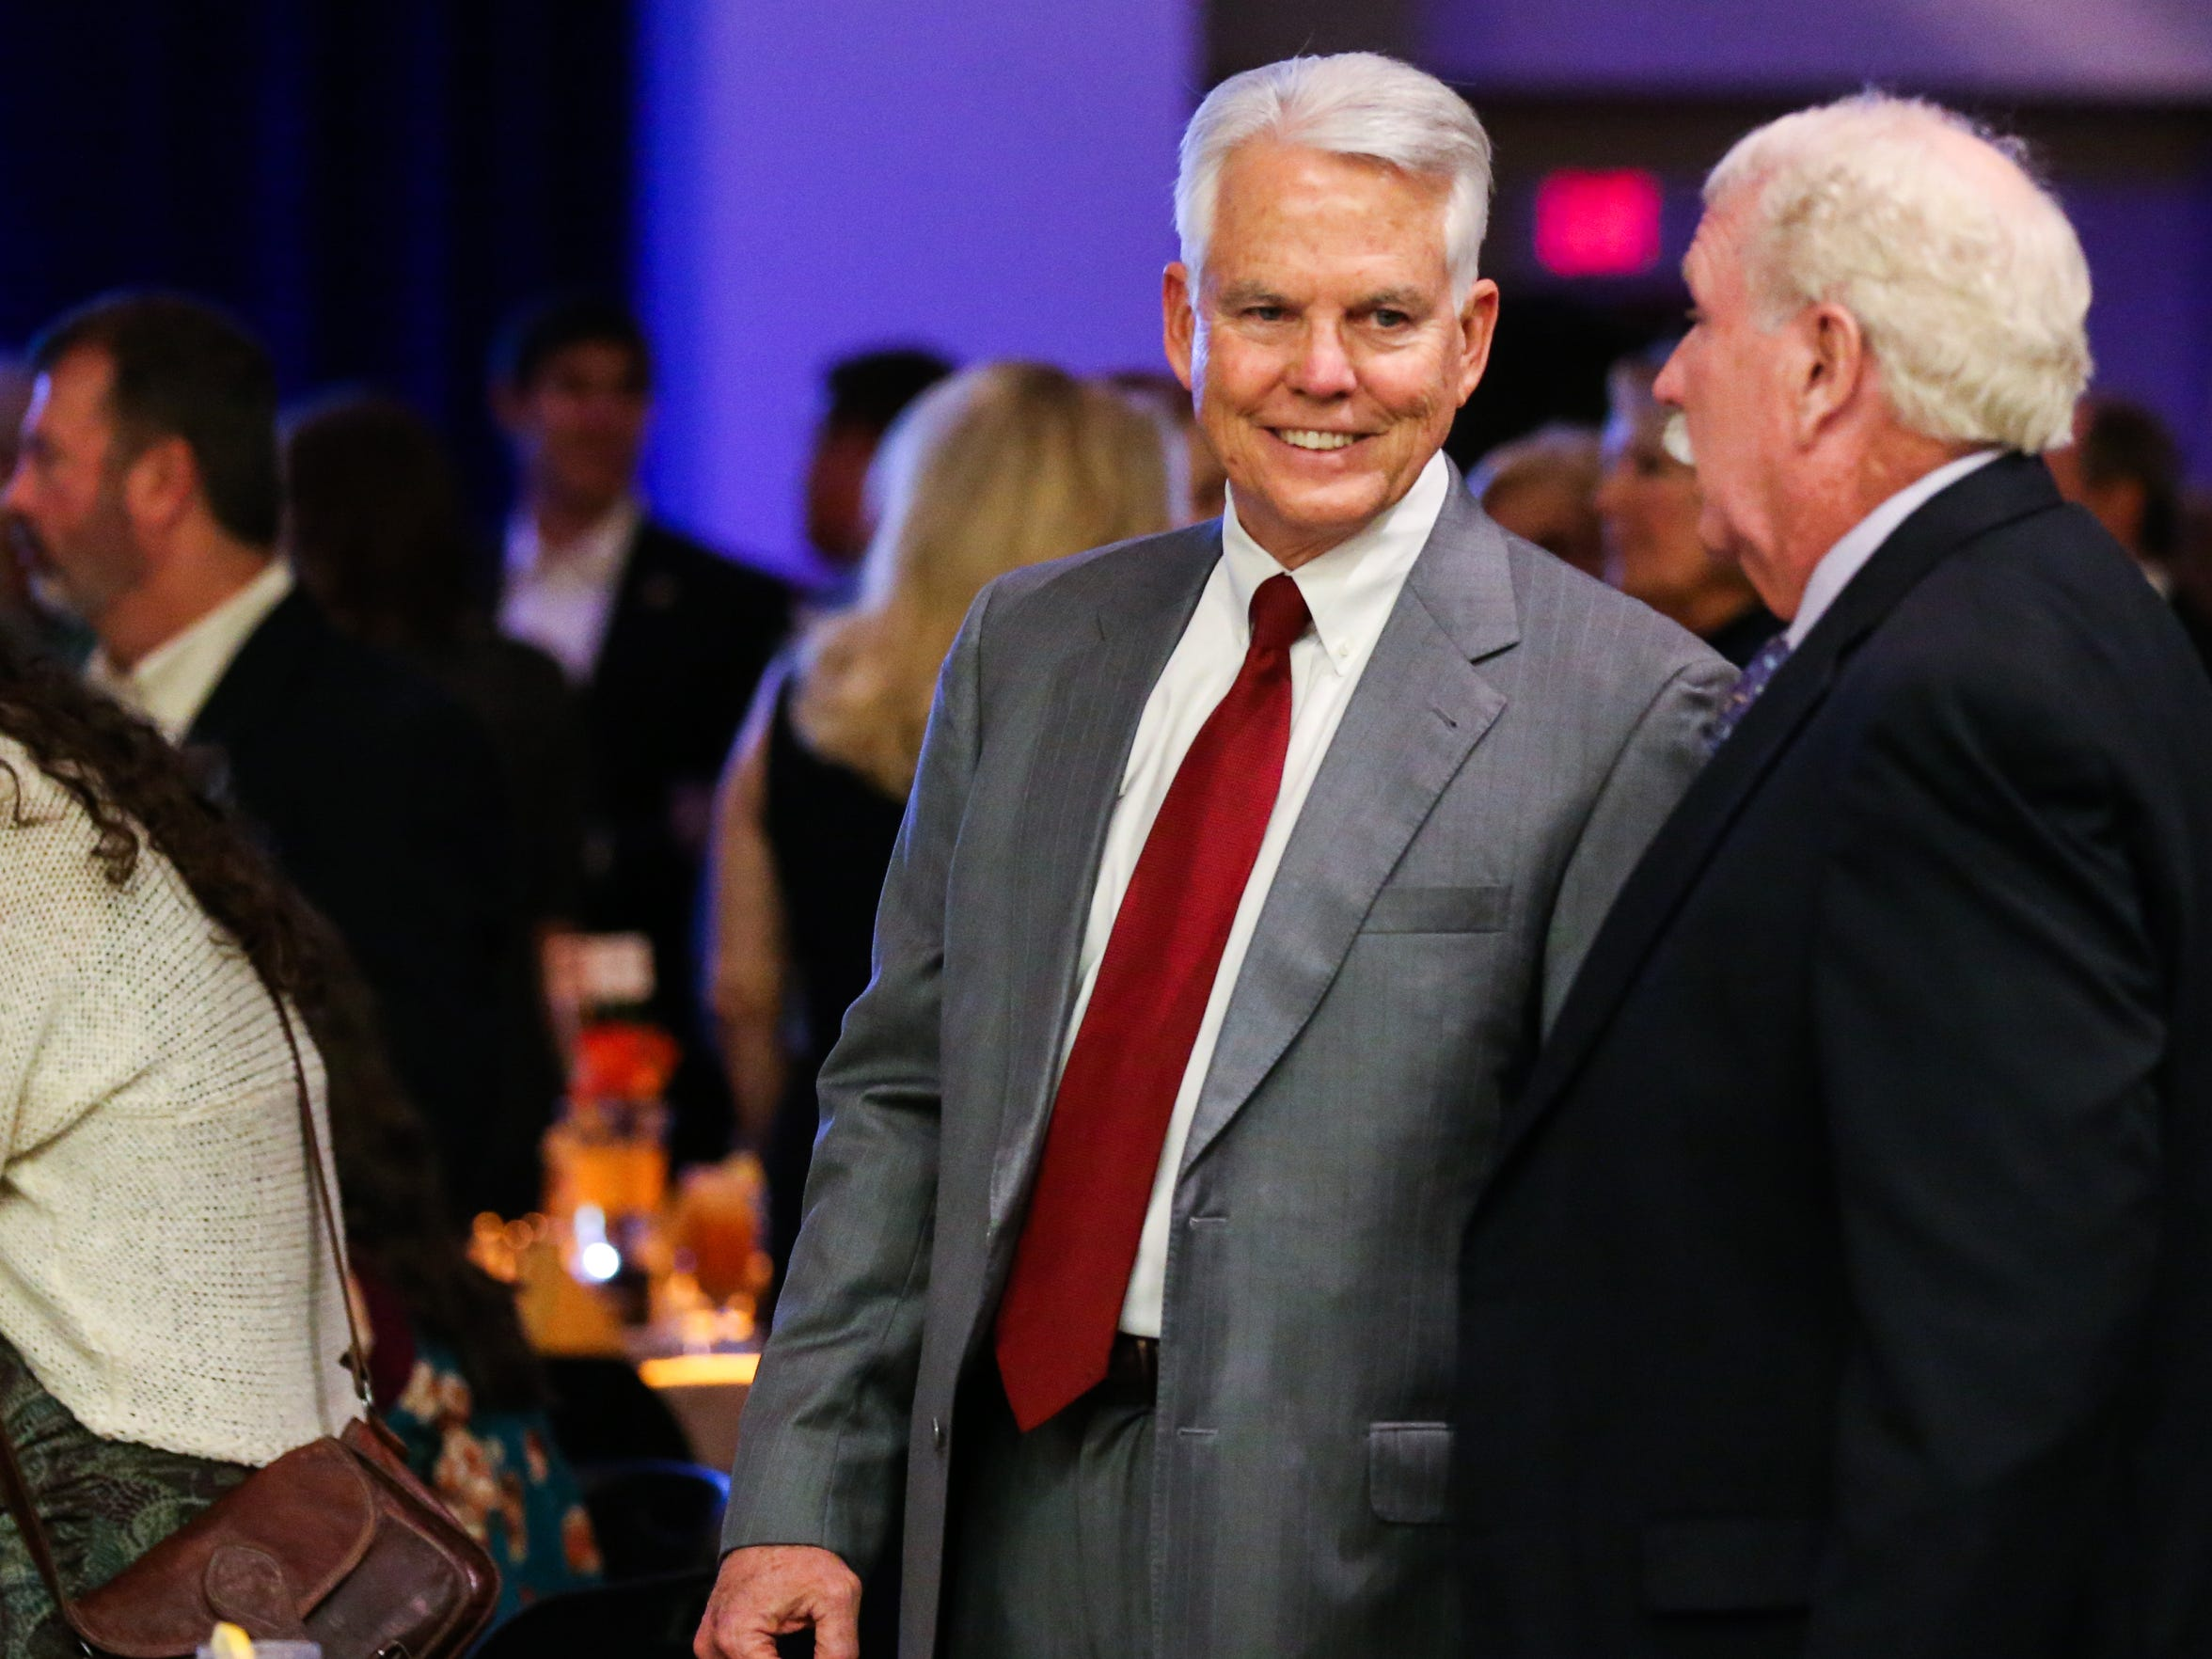 Max Parker chats with others during the 20 under 40